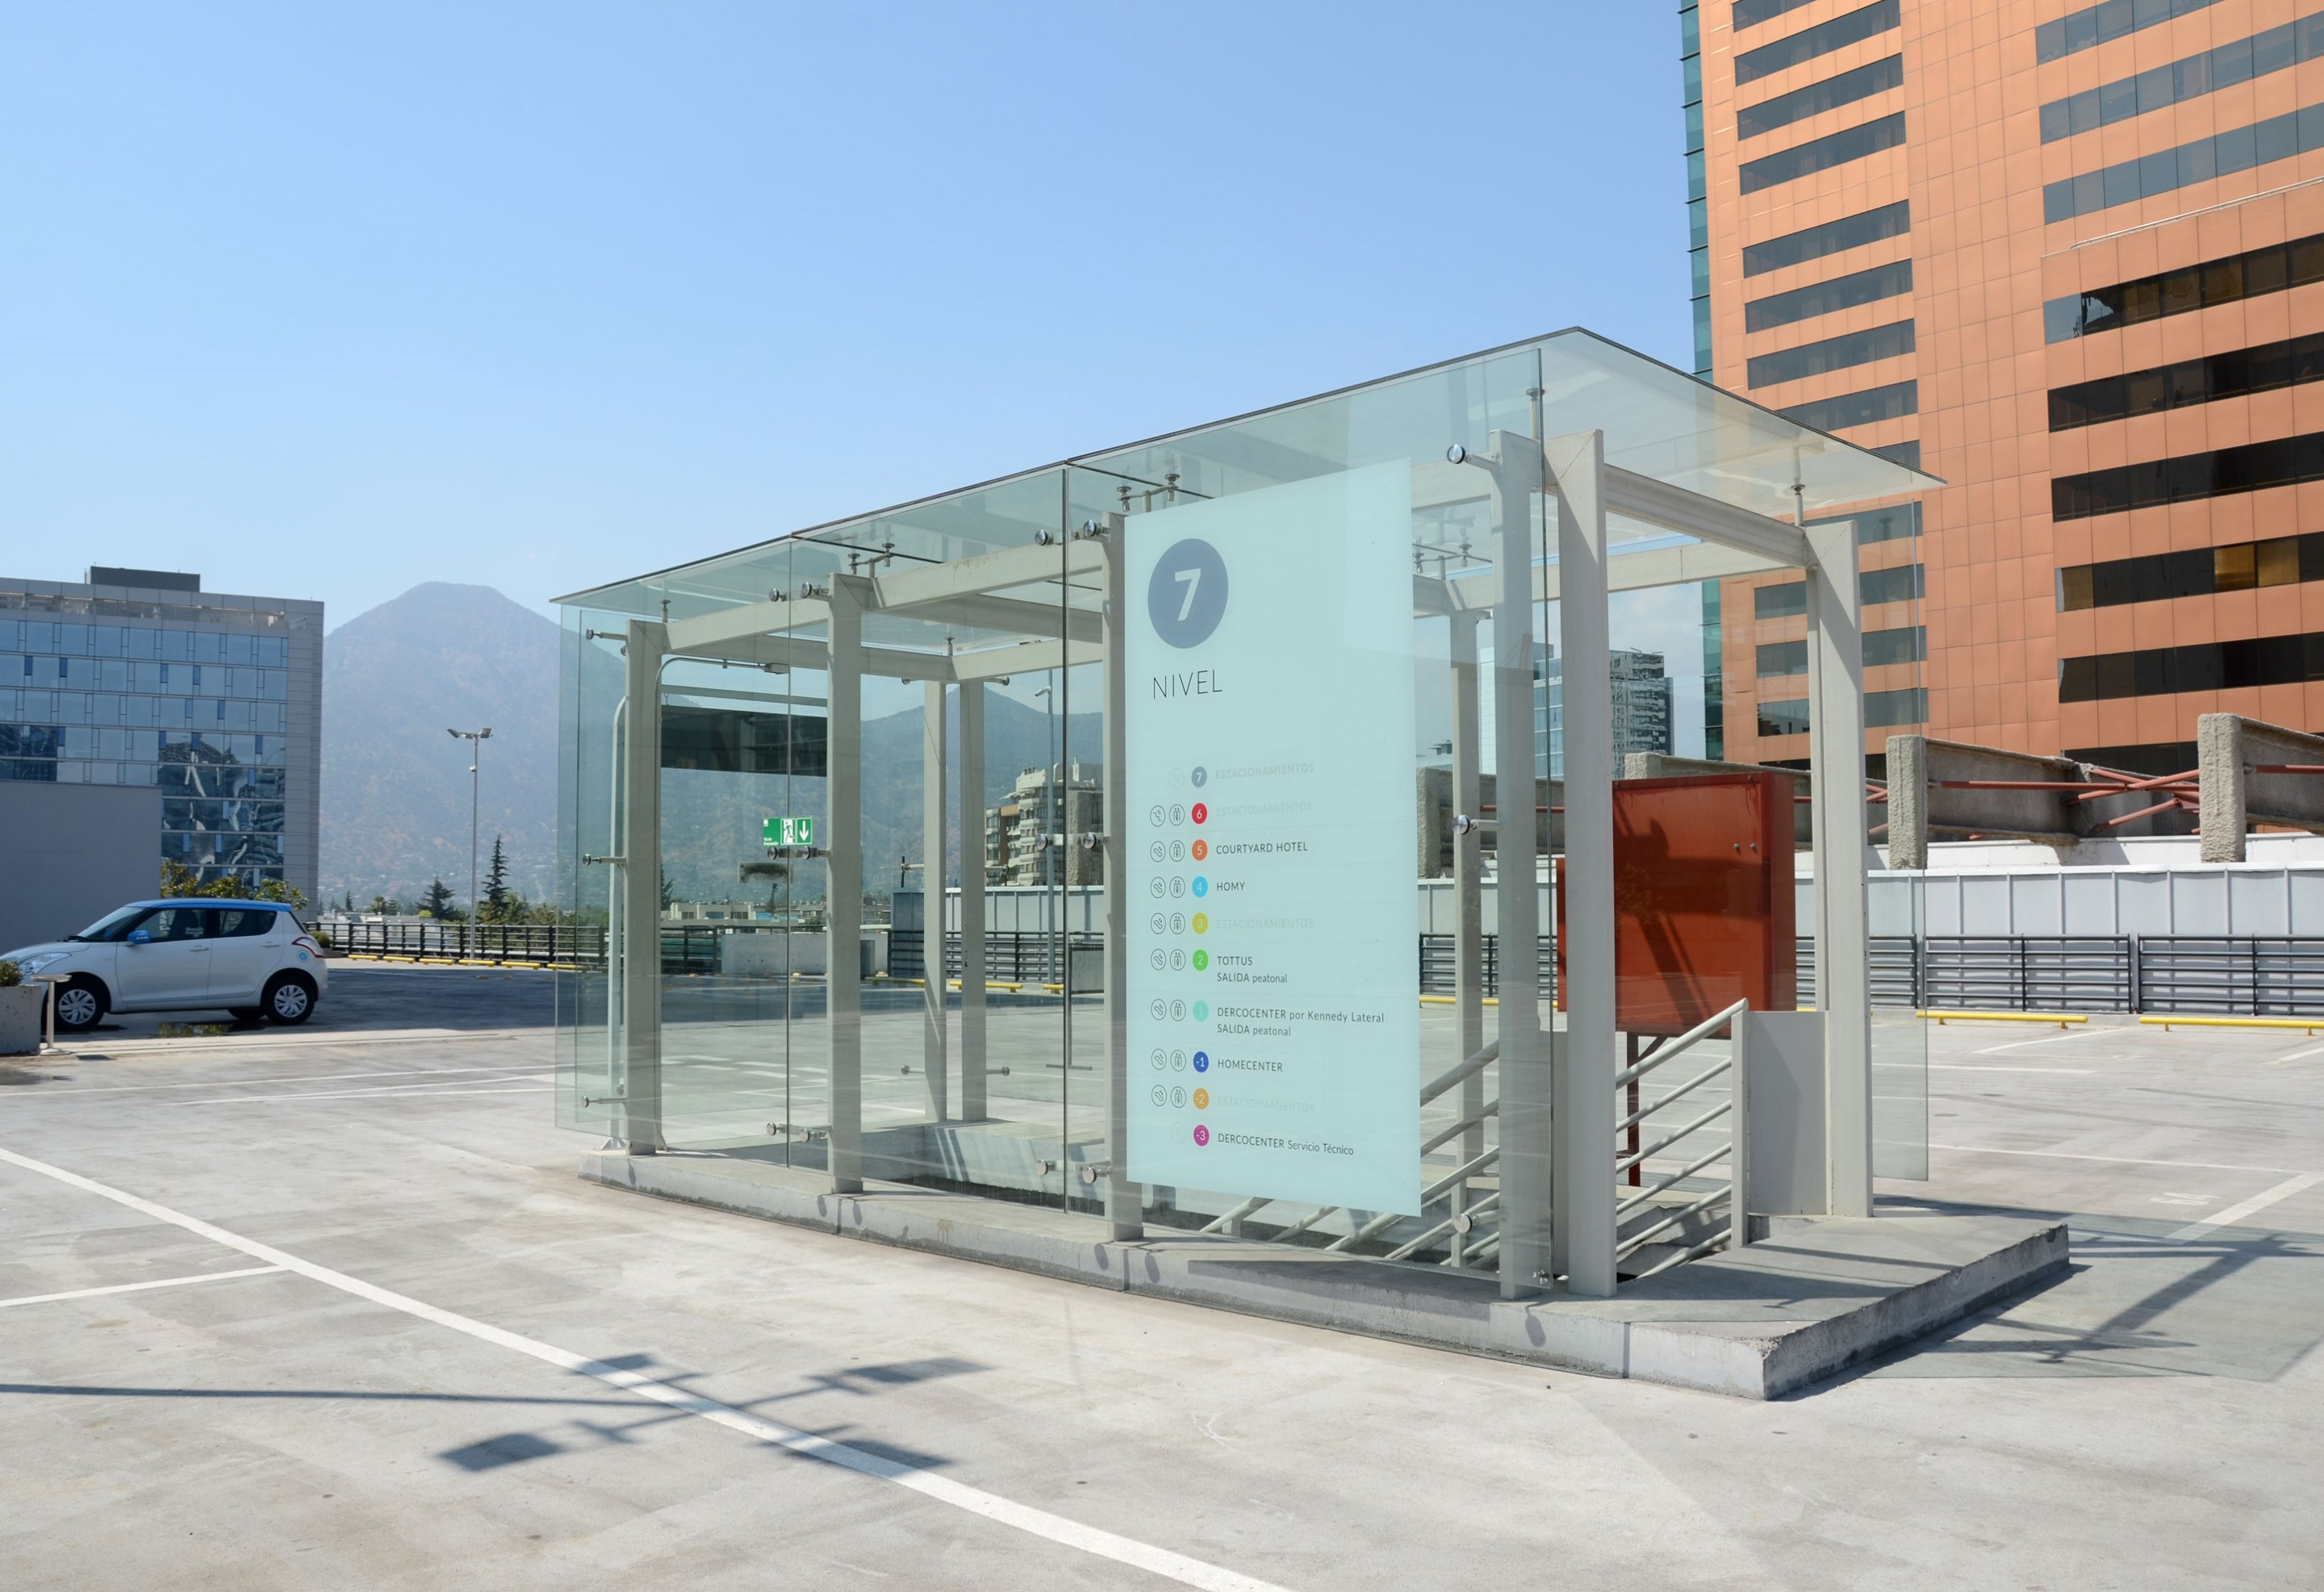 Open Plaza Kennedy – WAYFINDING CONSULTORES